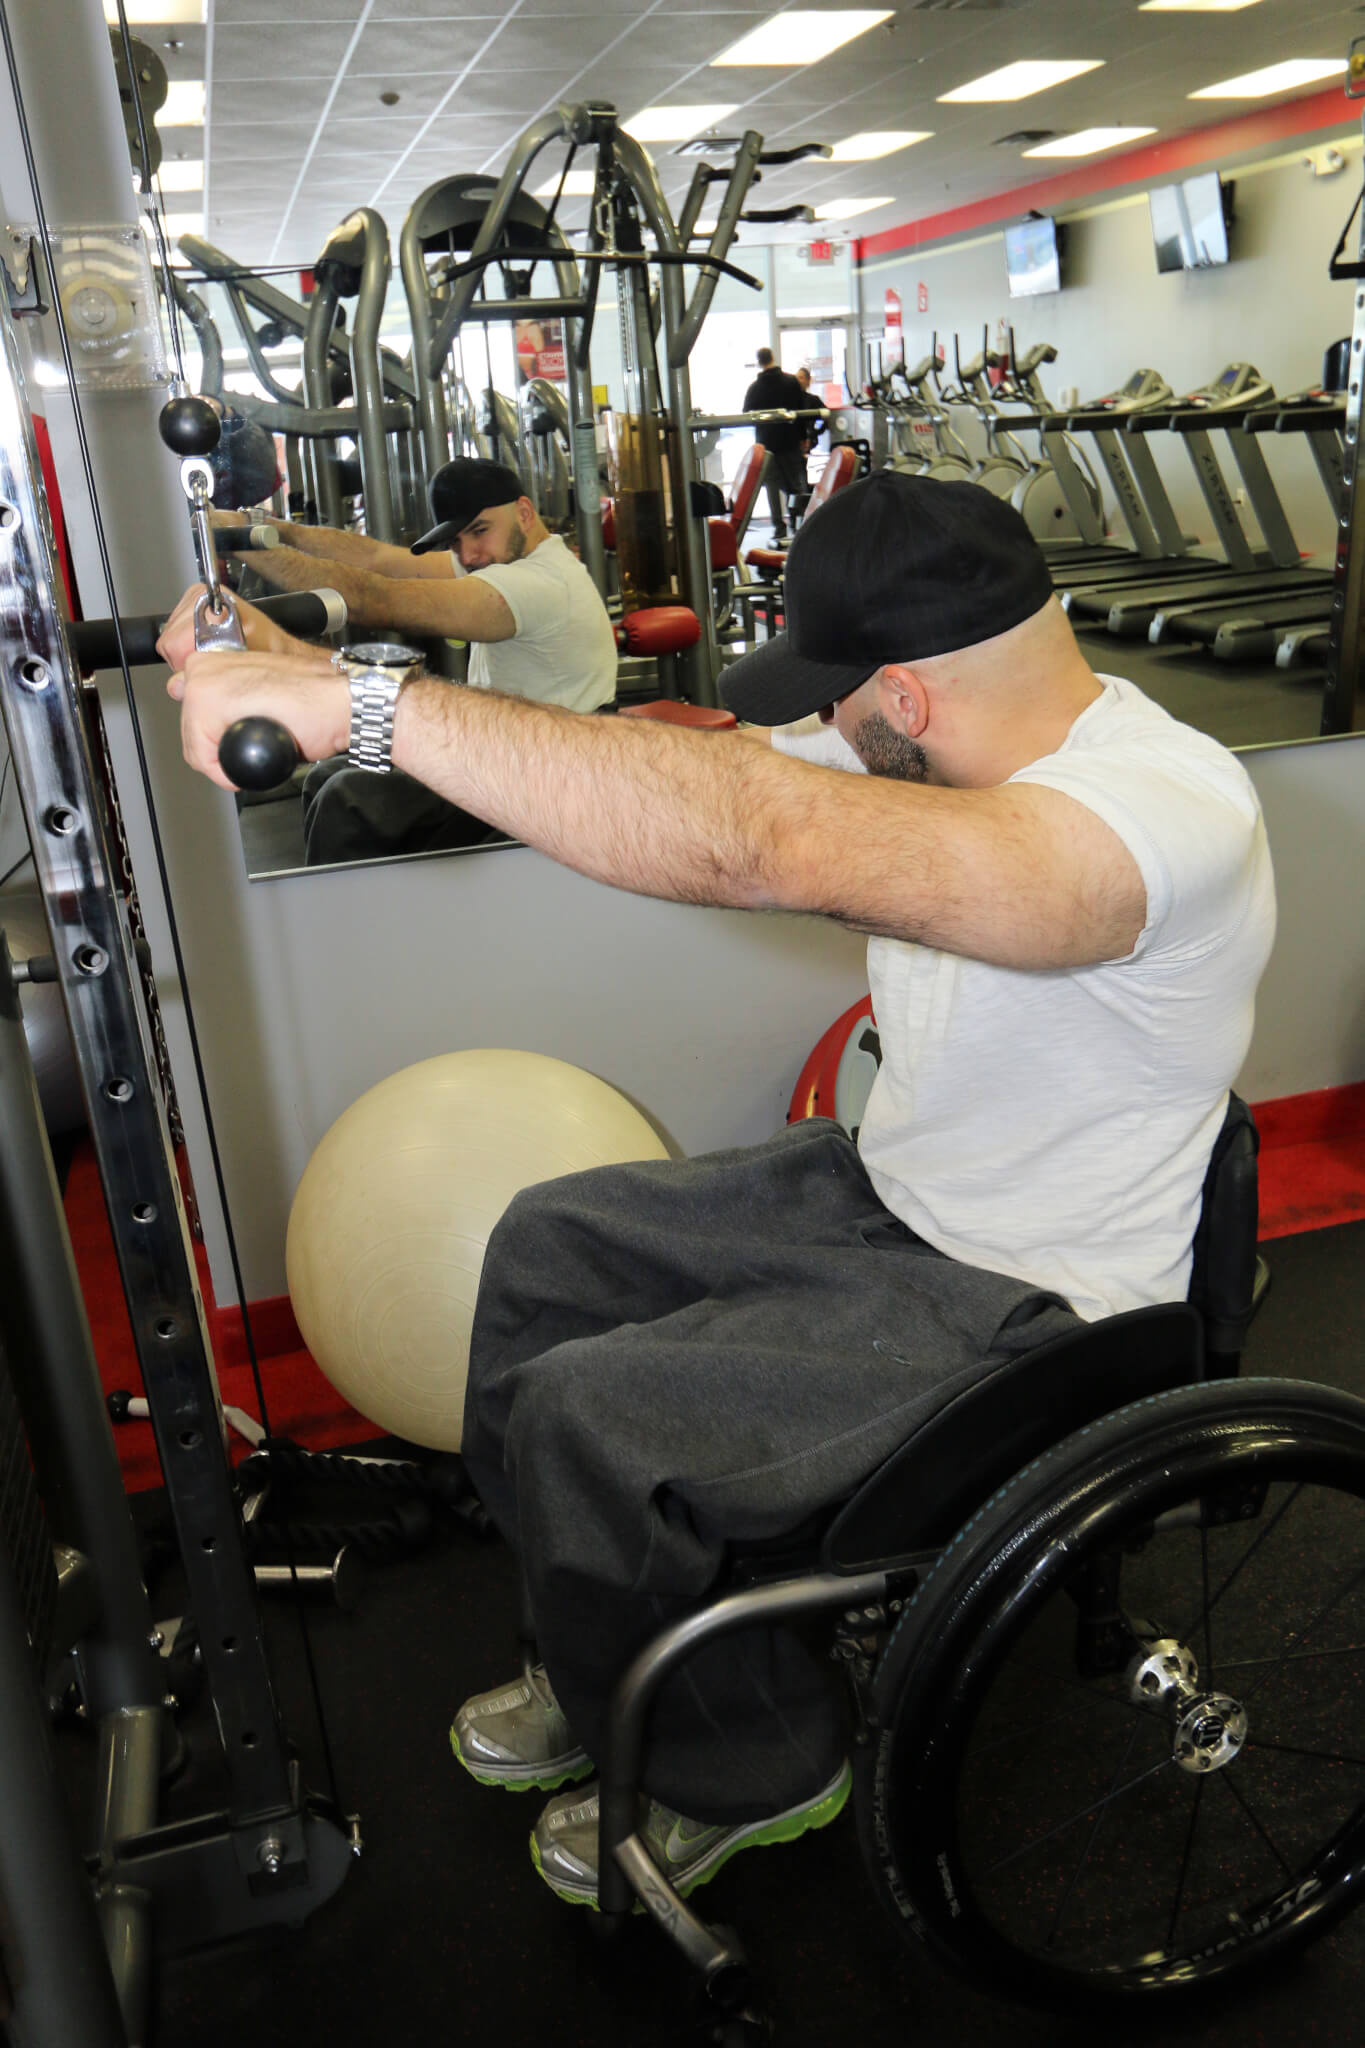 PL WO3R4AN original - An Insider's Look Into The Progress of ADAPTIVE SPORTS Within our Communities